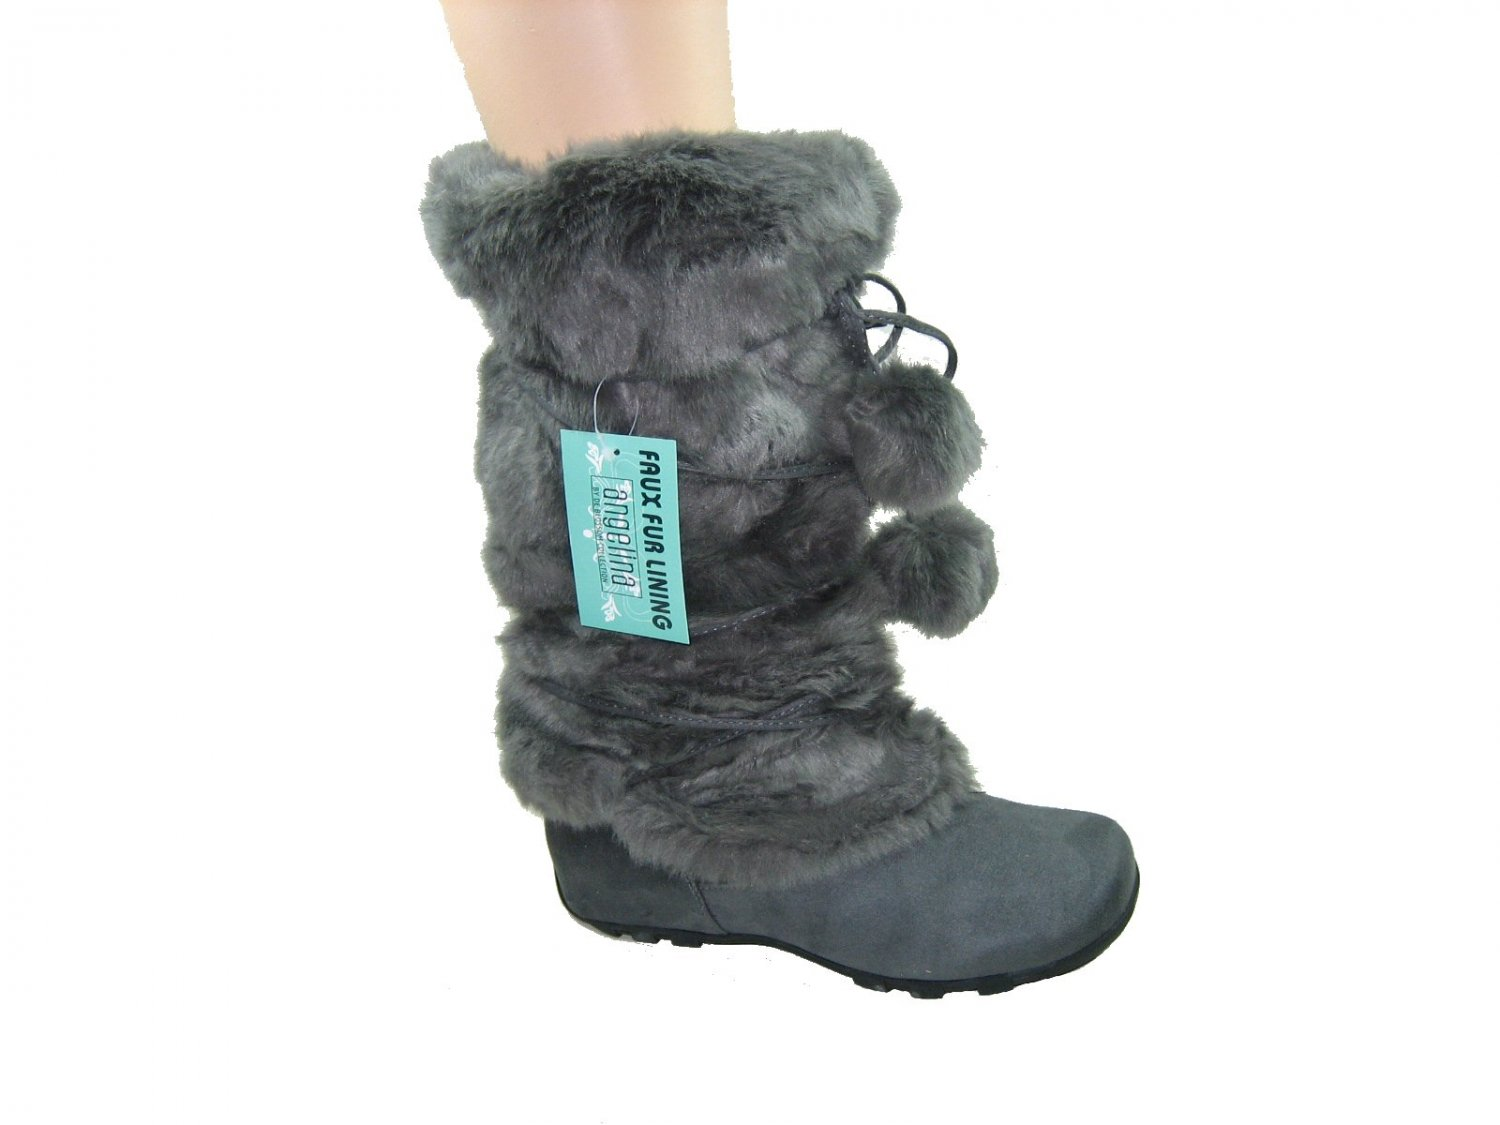 Blossom women's fashion gray faux suede mid-calf faux fur pom pom winter boots size 8.5